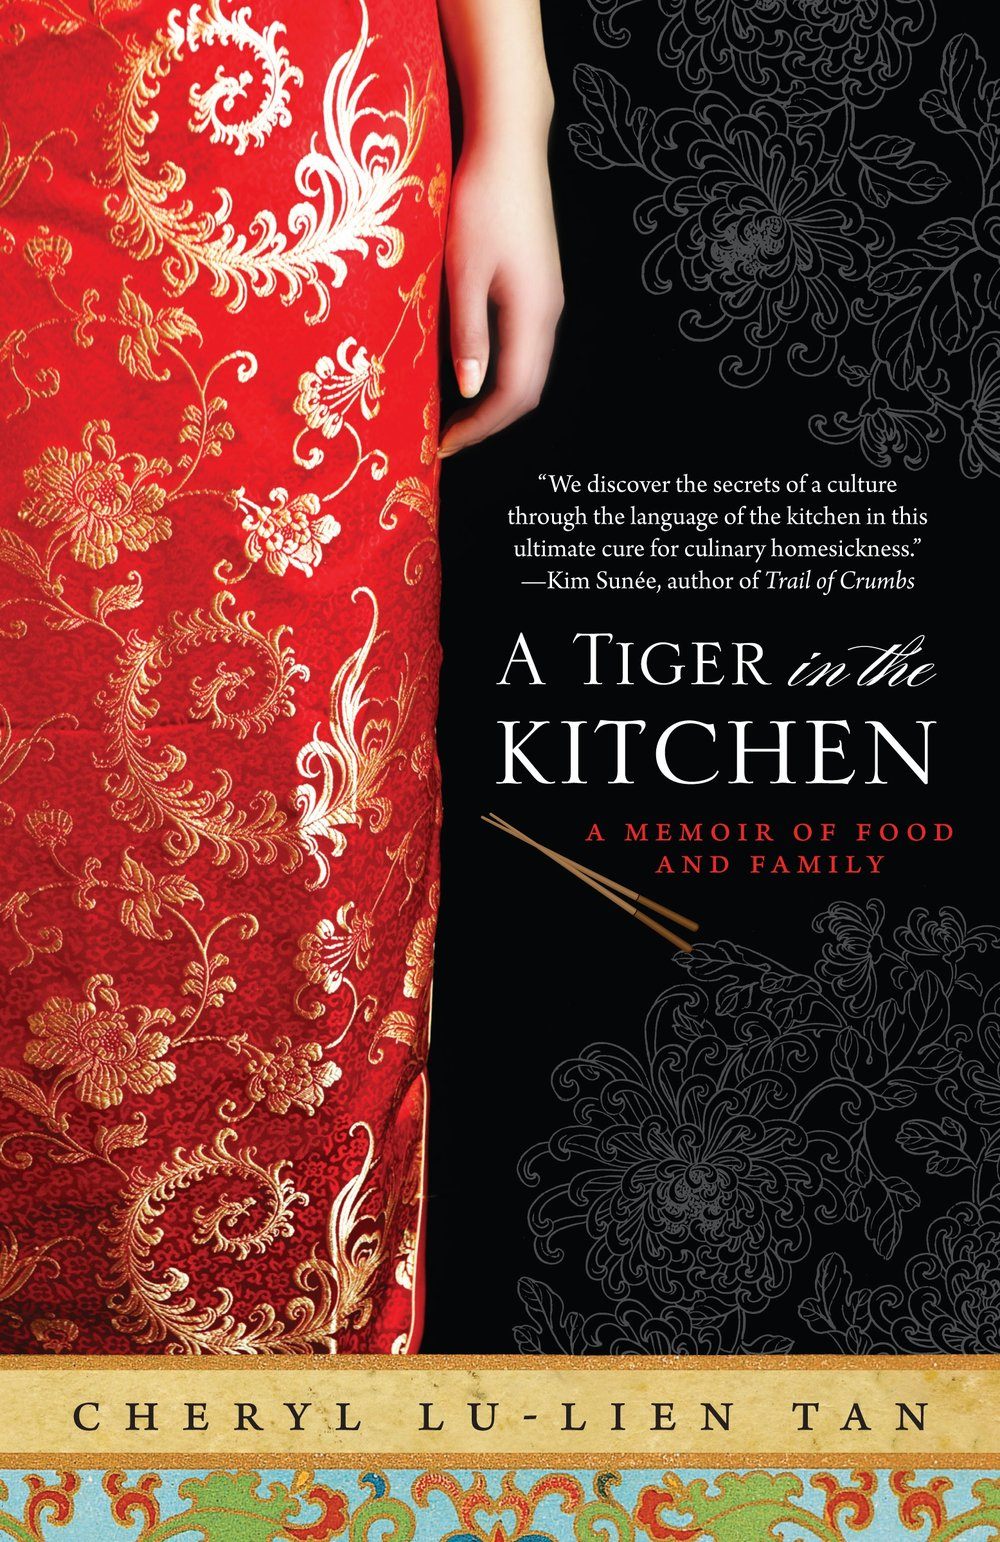 JACKET ART A Tiger in the Kitchen (1).JPG